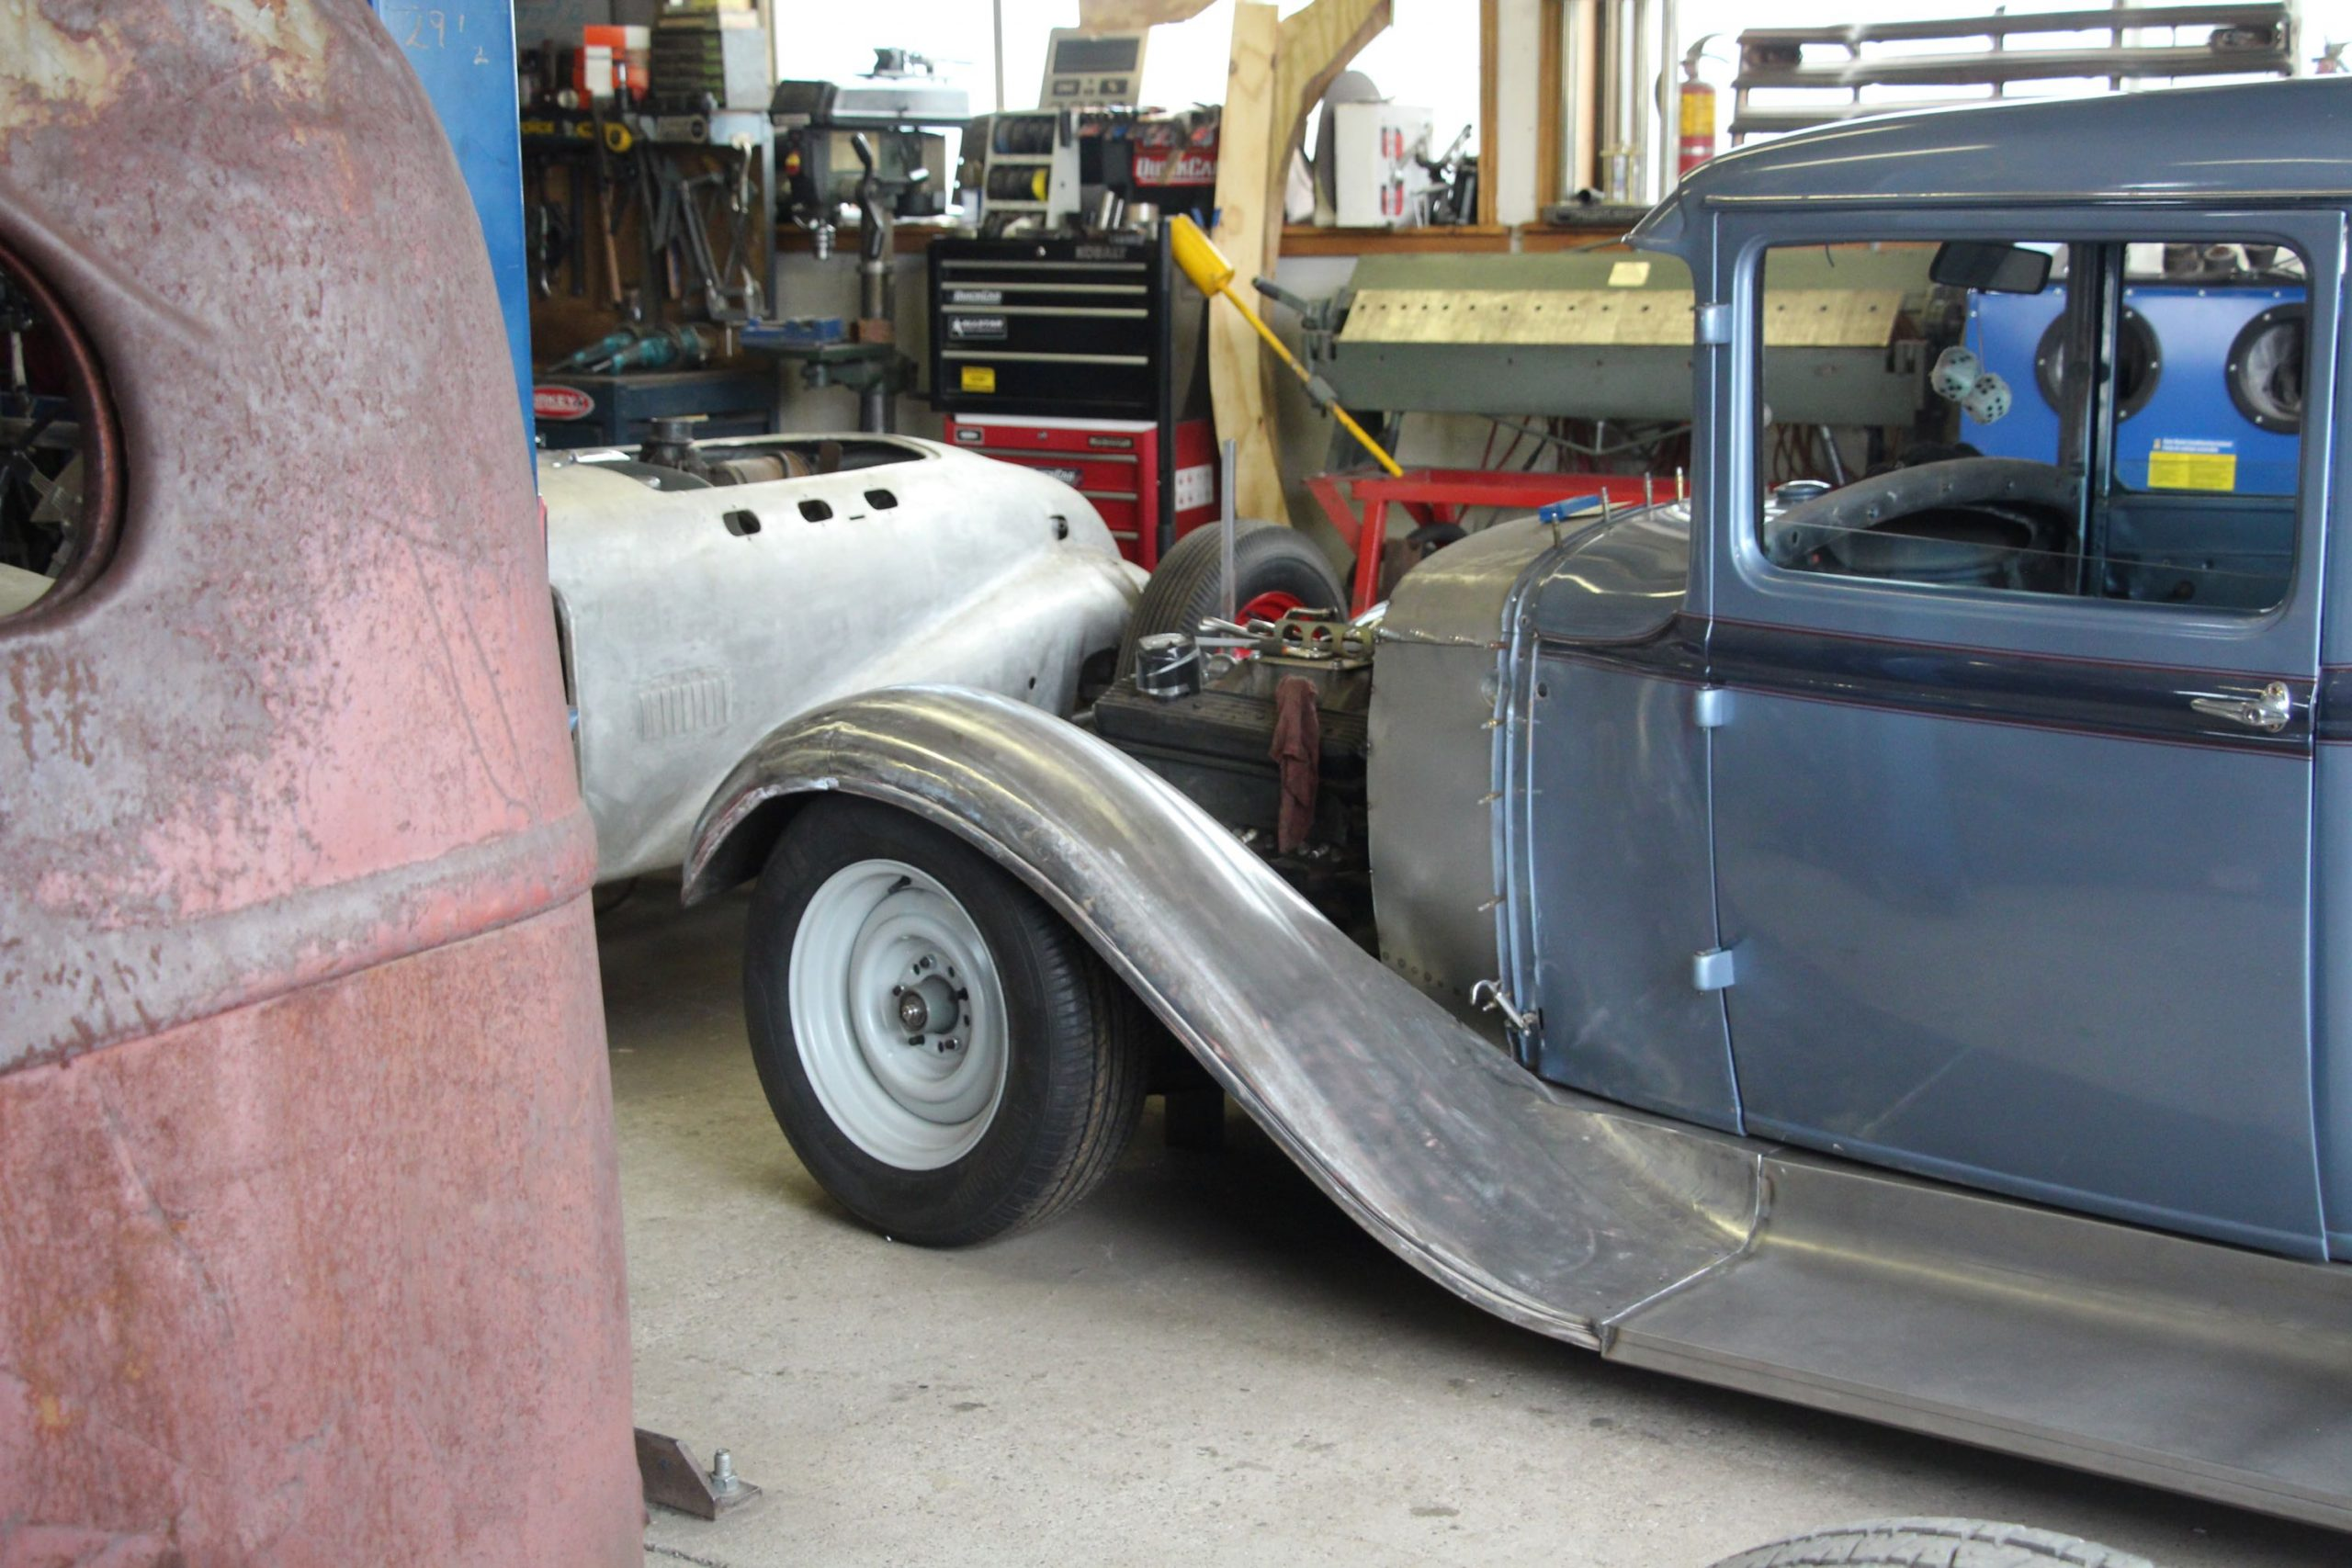 Mike Westwood model a datsun chassis